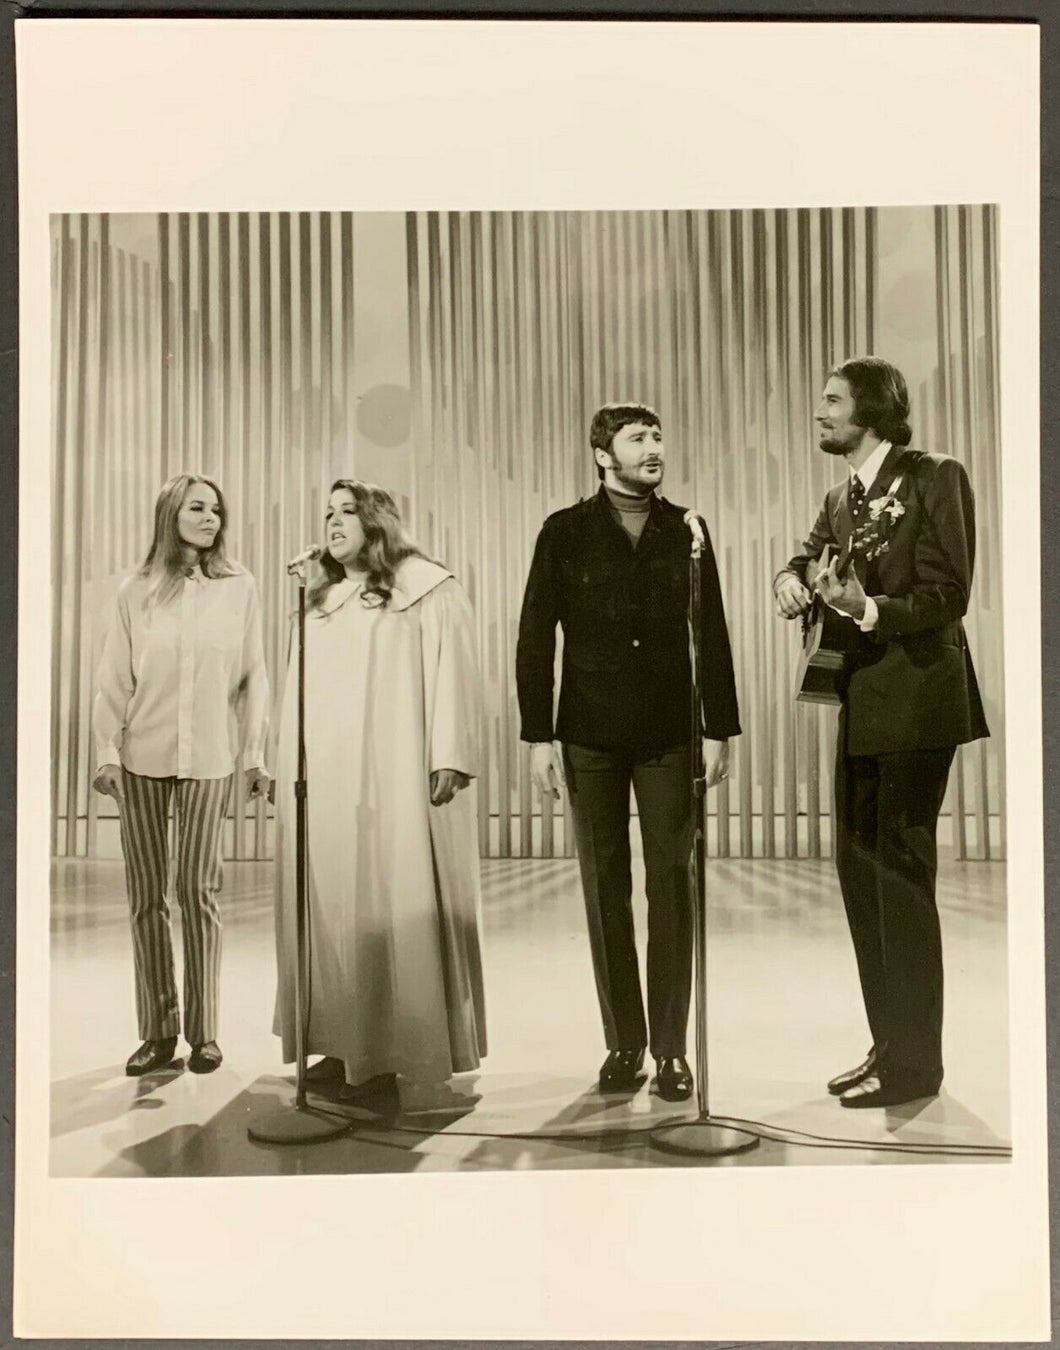 1969 The Mamas And The Papas CBS Studio Issued Photo Iconic Hippie Rock Band